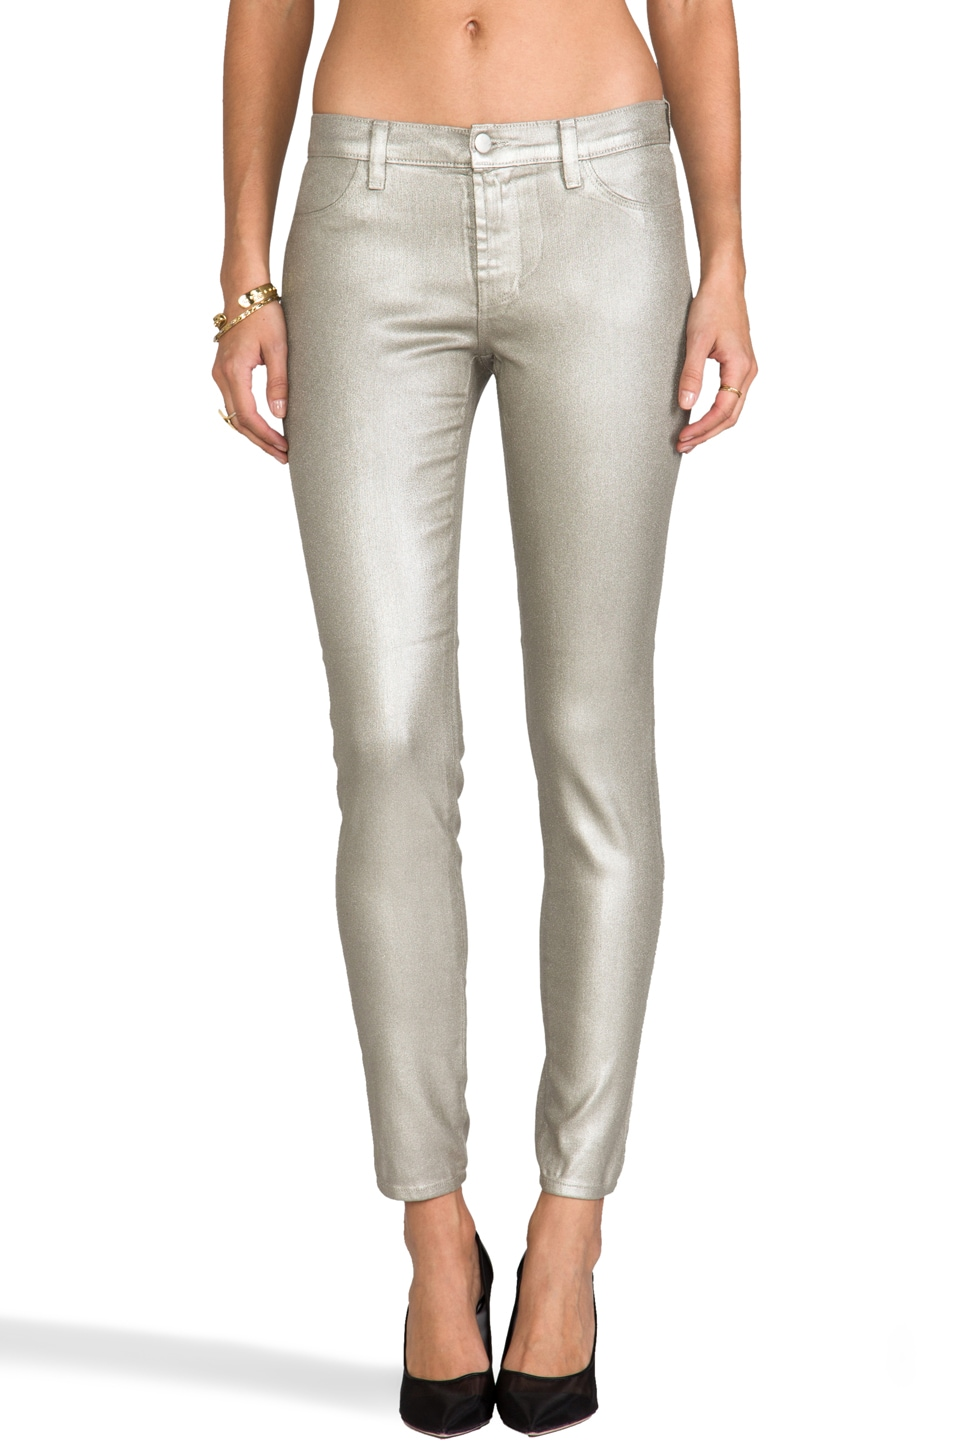 J Brand Midrise Super Skinny in Gold